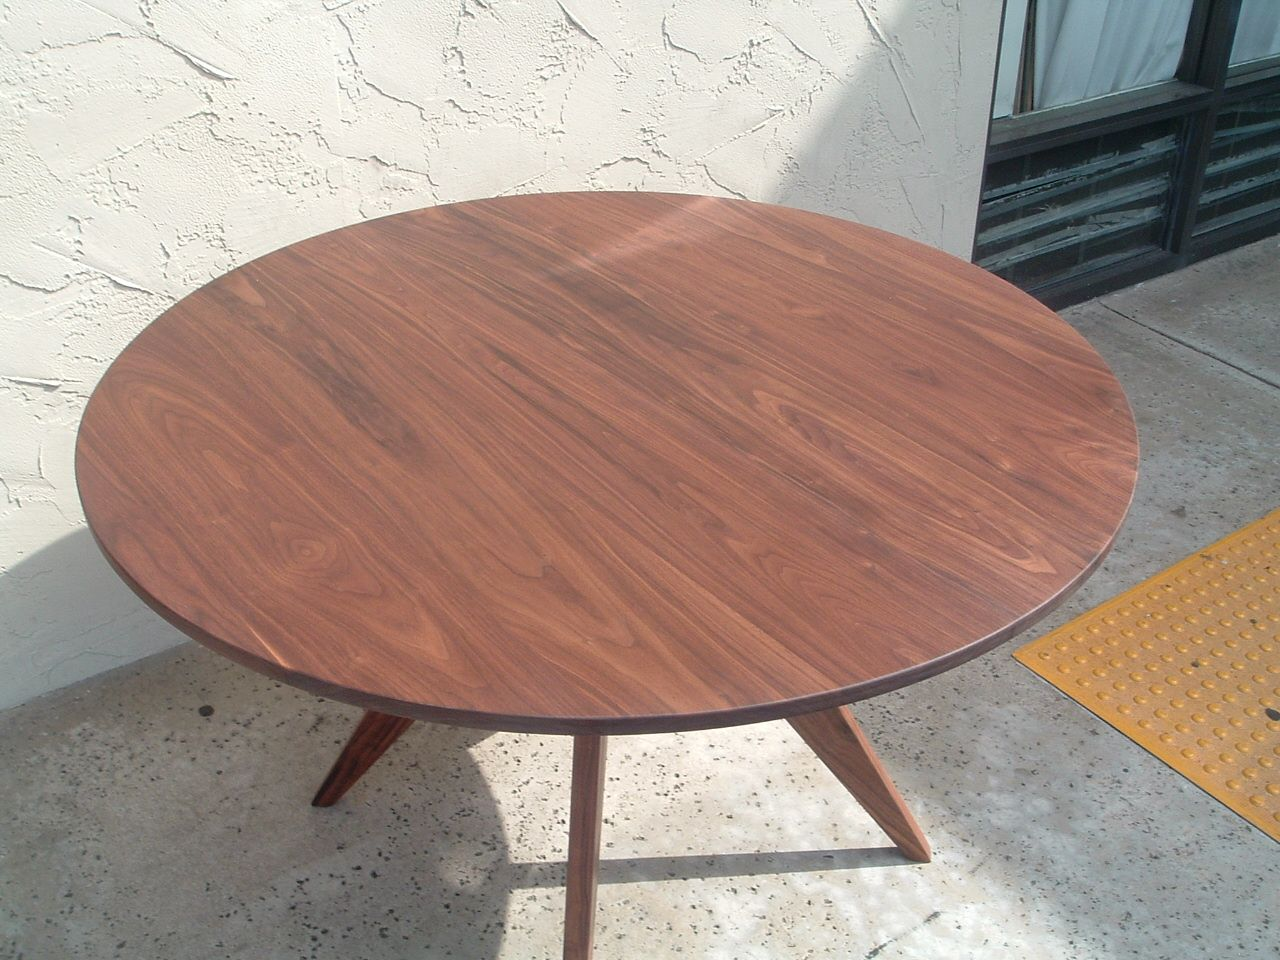 handmade 48 inch diameter solid walnut 60s modern dining table by antikea. Black Bedroom Furniture Sets. Home Design Ideas